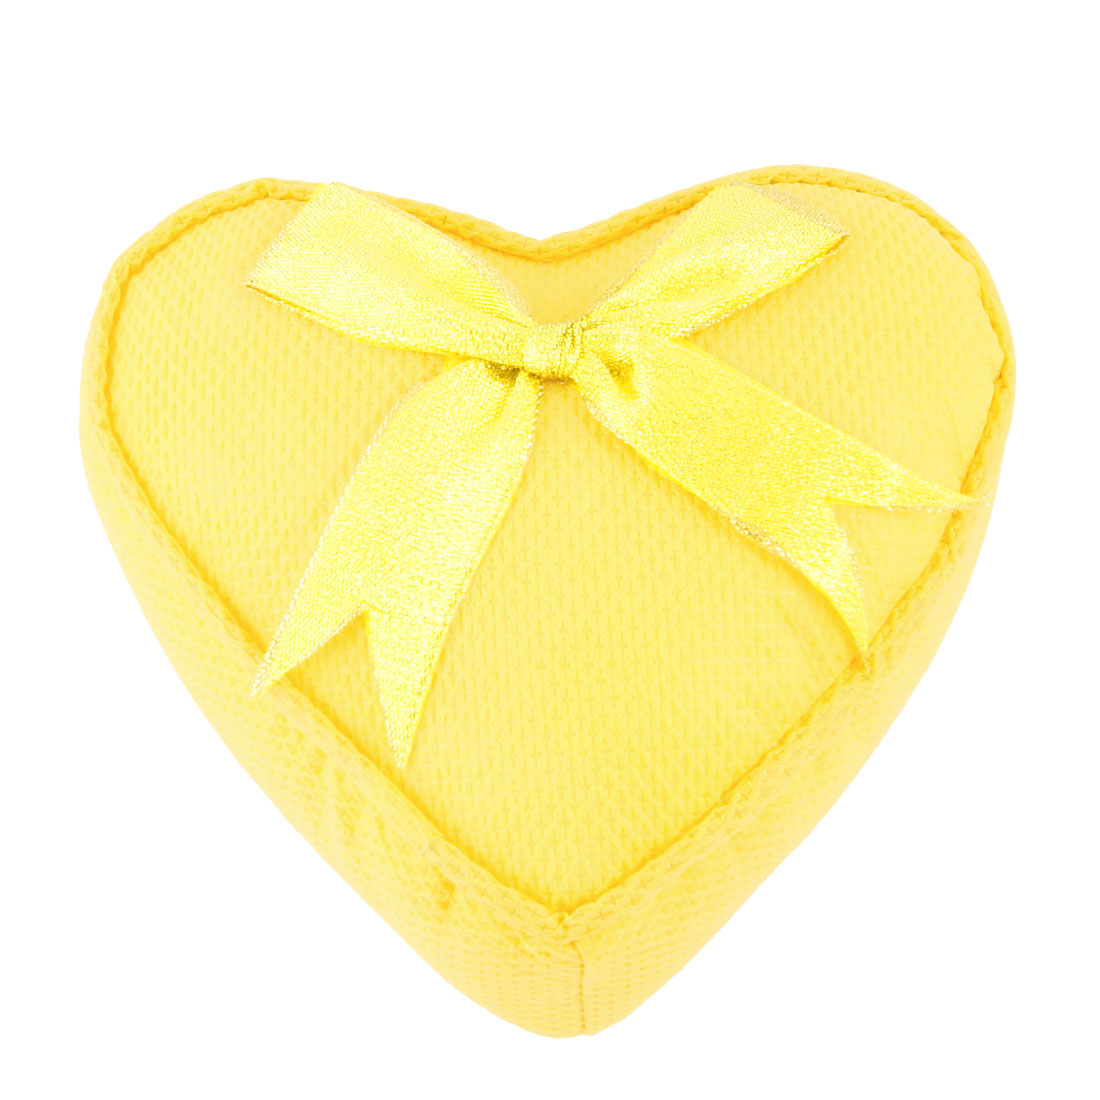 Car Yellow Heart Design Non-Woven Fabric Bamboo Charcoal Package Bag